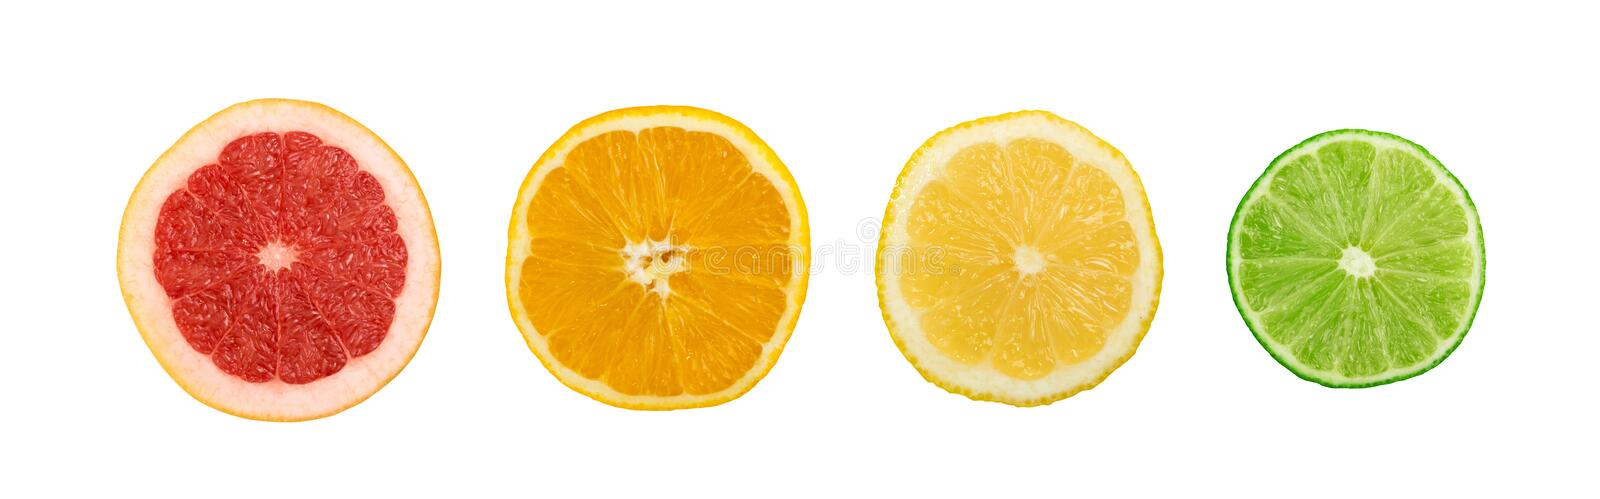 Set of sliced lemon, orange, lime and red grapefruit. Line of sliced lemon, orange, lime and red grapefruit flat lay and top view. Macro photo of citrus fruits stock photography